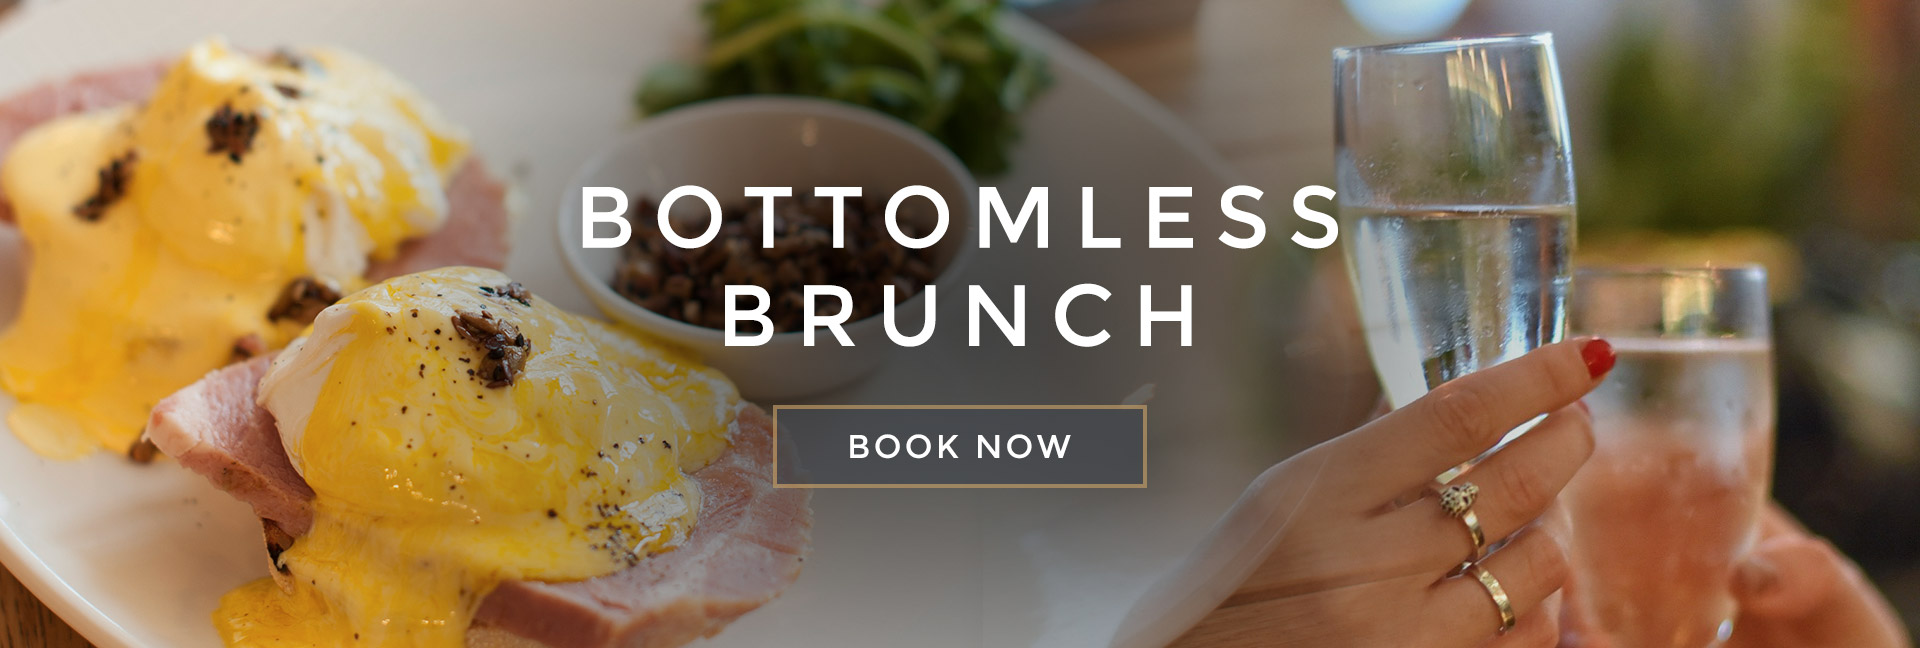 Bottomless Brunch at All Bar One Worcester - Book now